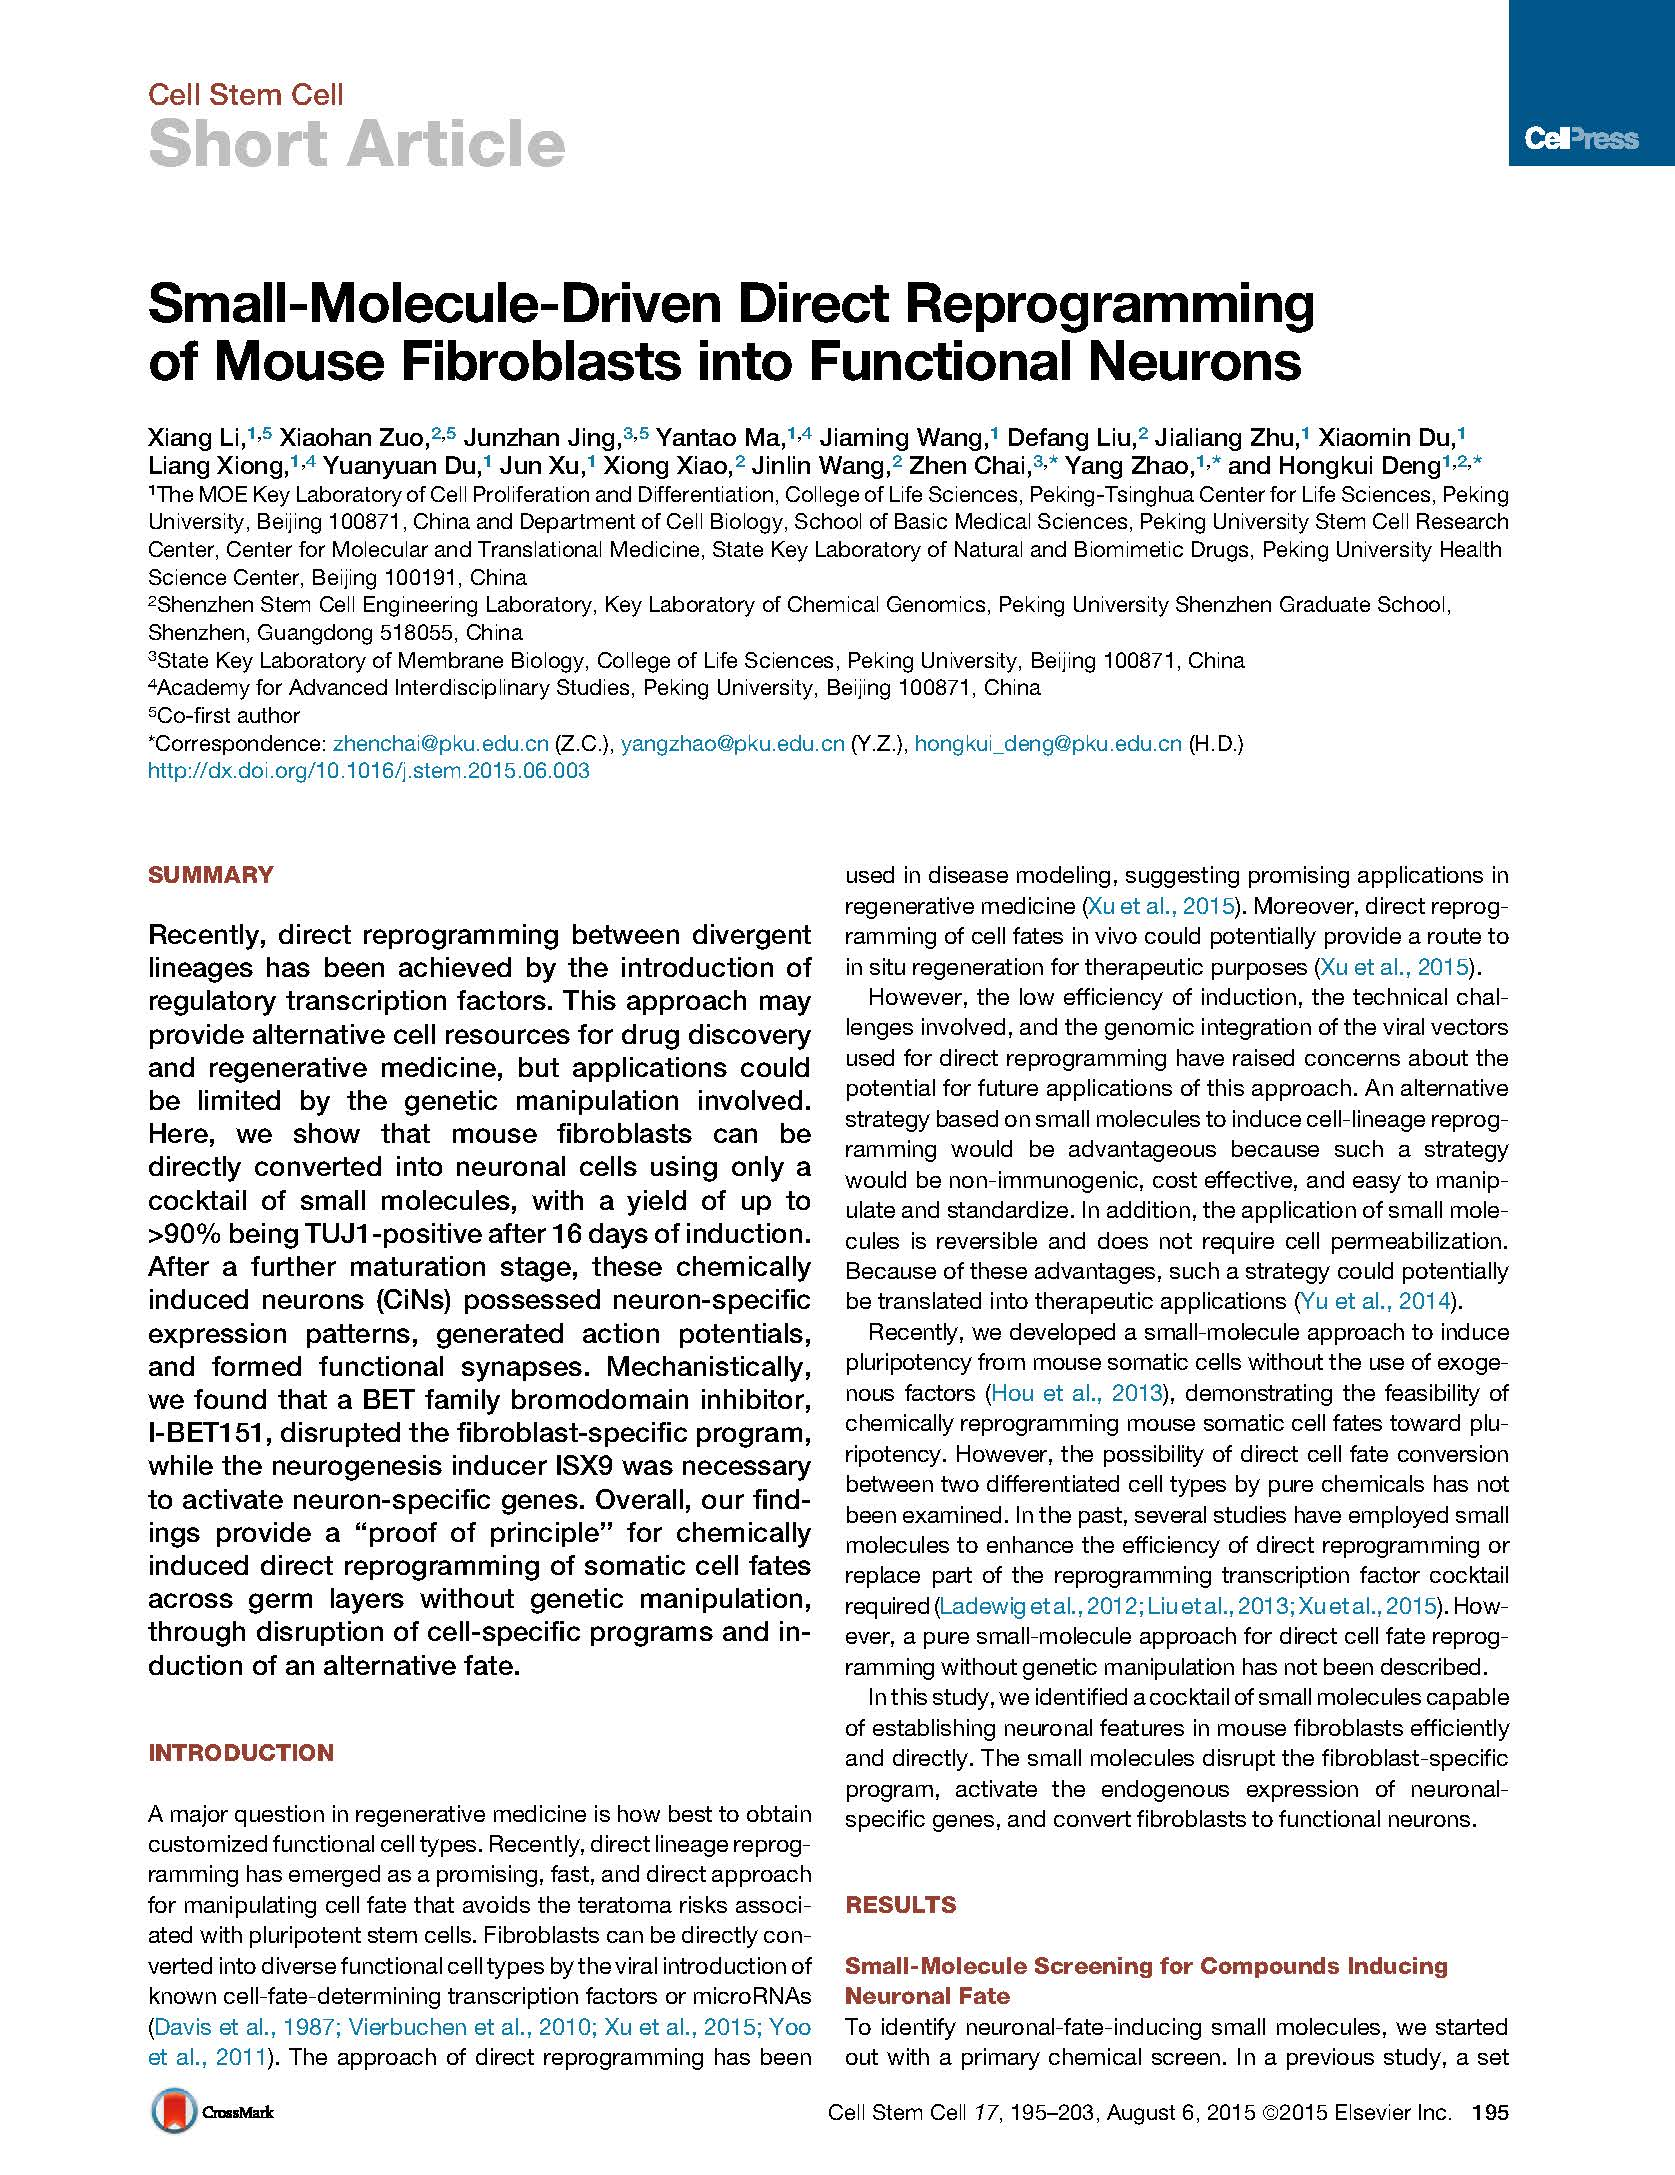 Small-Molecule-Driven-Direct-Reprogramming-of-Mouse-Fibroblasts-into-Functional-Neurons-2.jpg